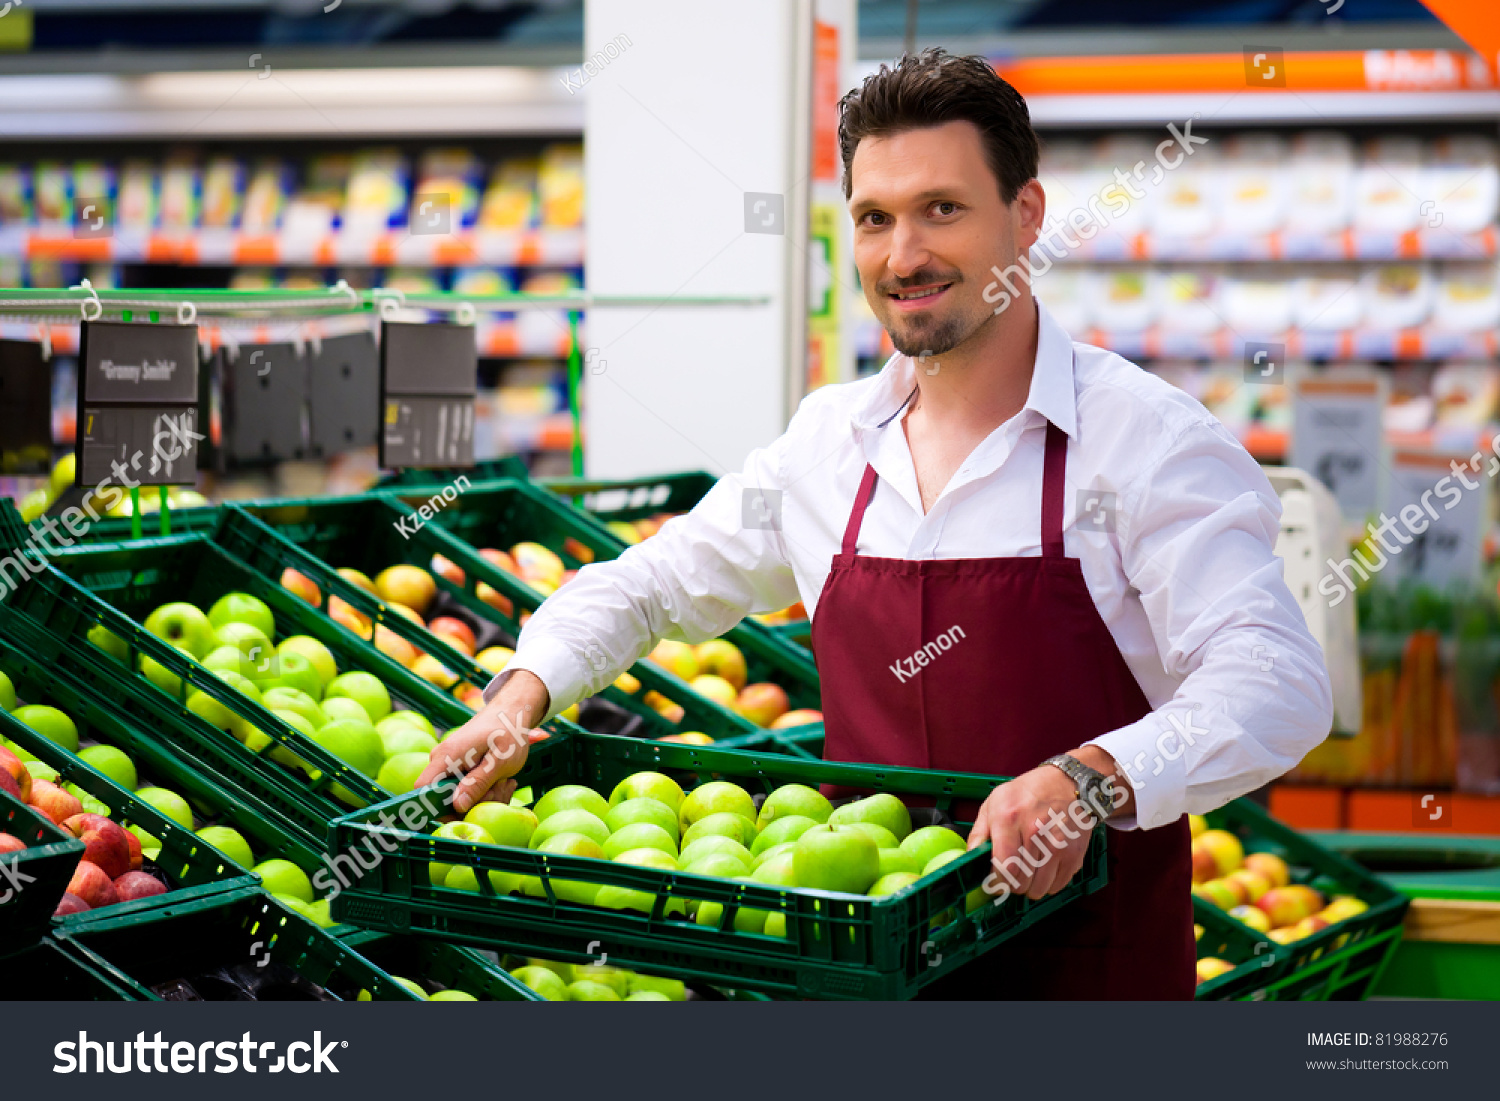 man supermarket shop assistant he brings stock photo  man in supermarket as shop assistant he brings some boxes apples